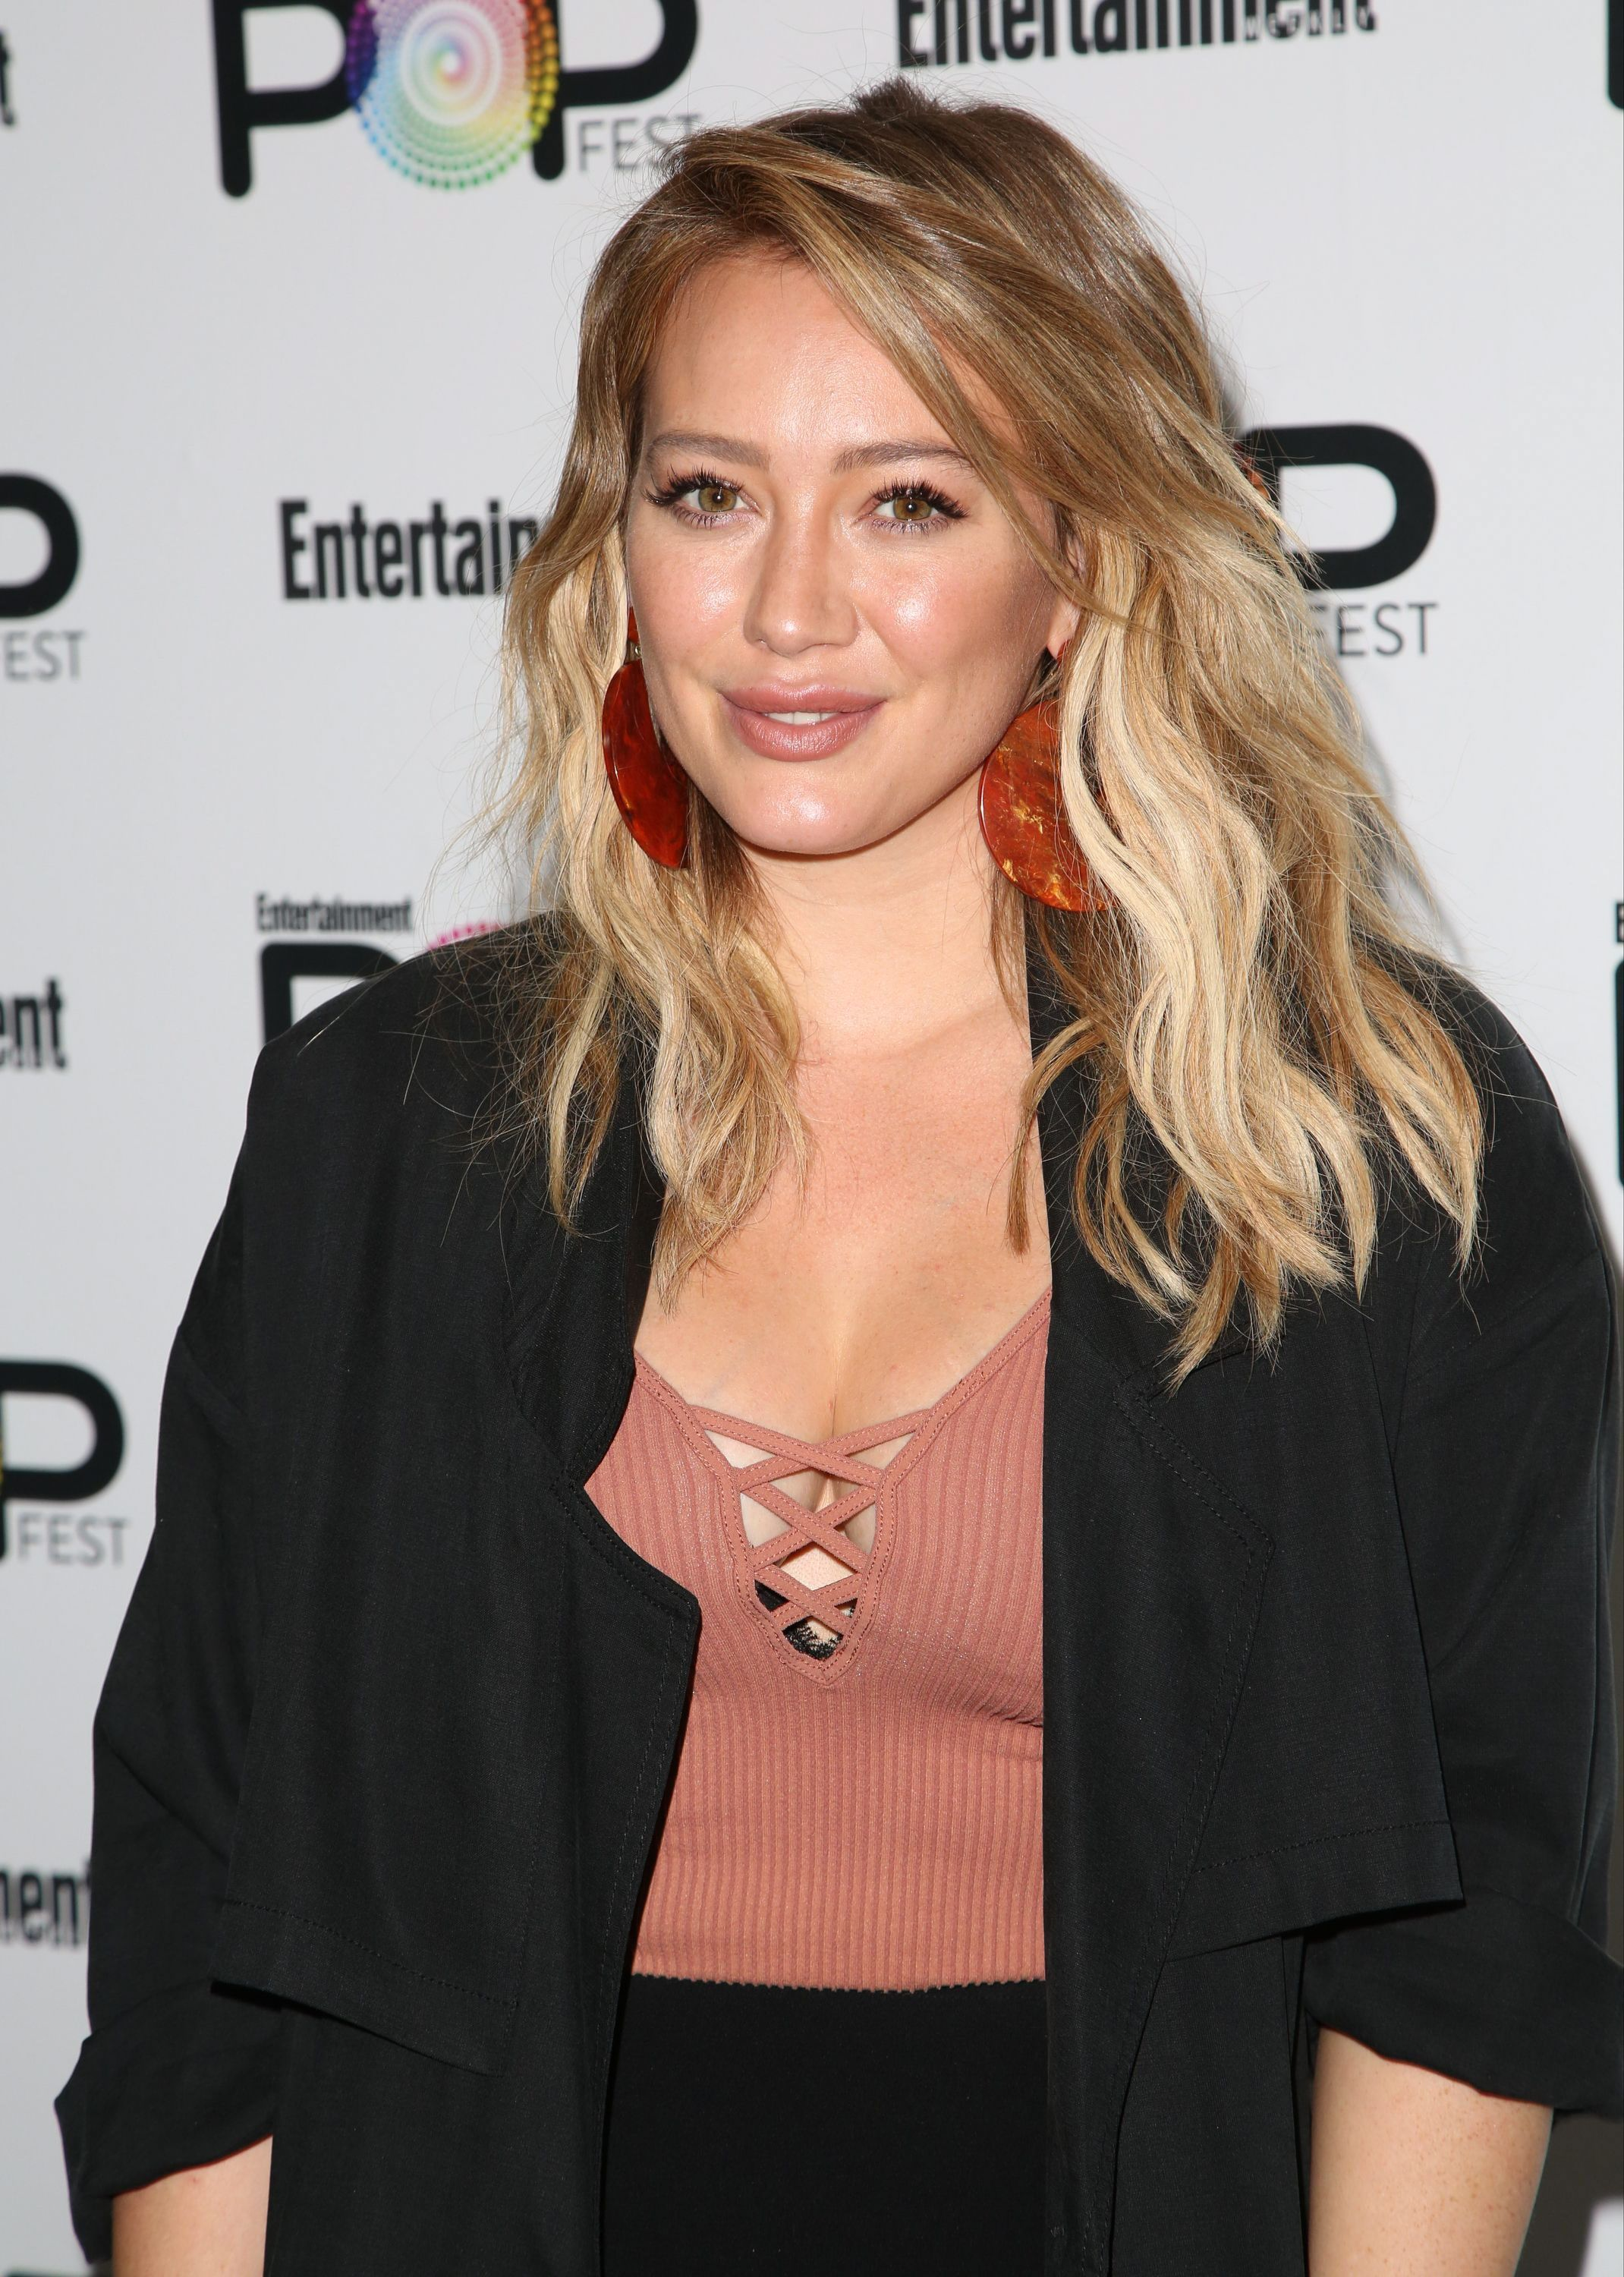 Hilary Duff And Jason Walsh Apologize For Offensive Halloween Costumes - Fame10